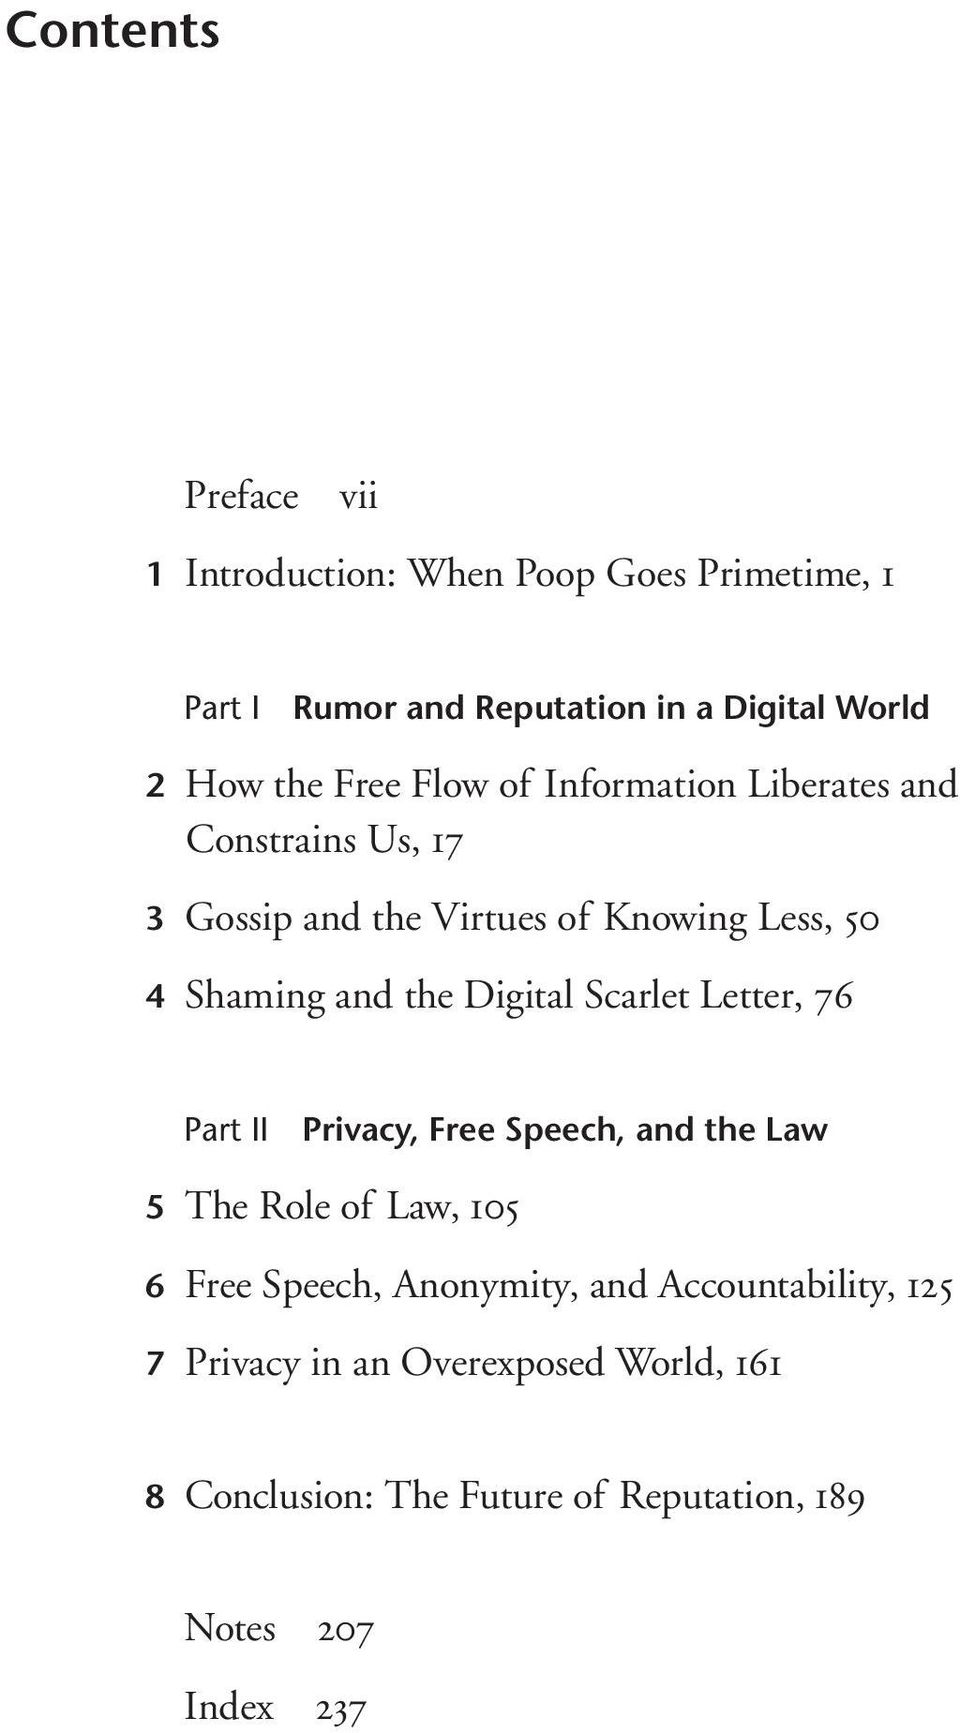 Digital Scarlet Letter, 76 Part II Privacy, Free Speech, and the Law 5 The Role of Law, 105 6 Free Speech, Anonymity, and